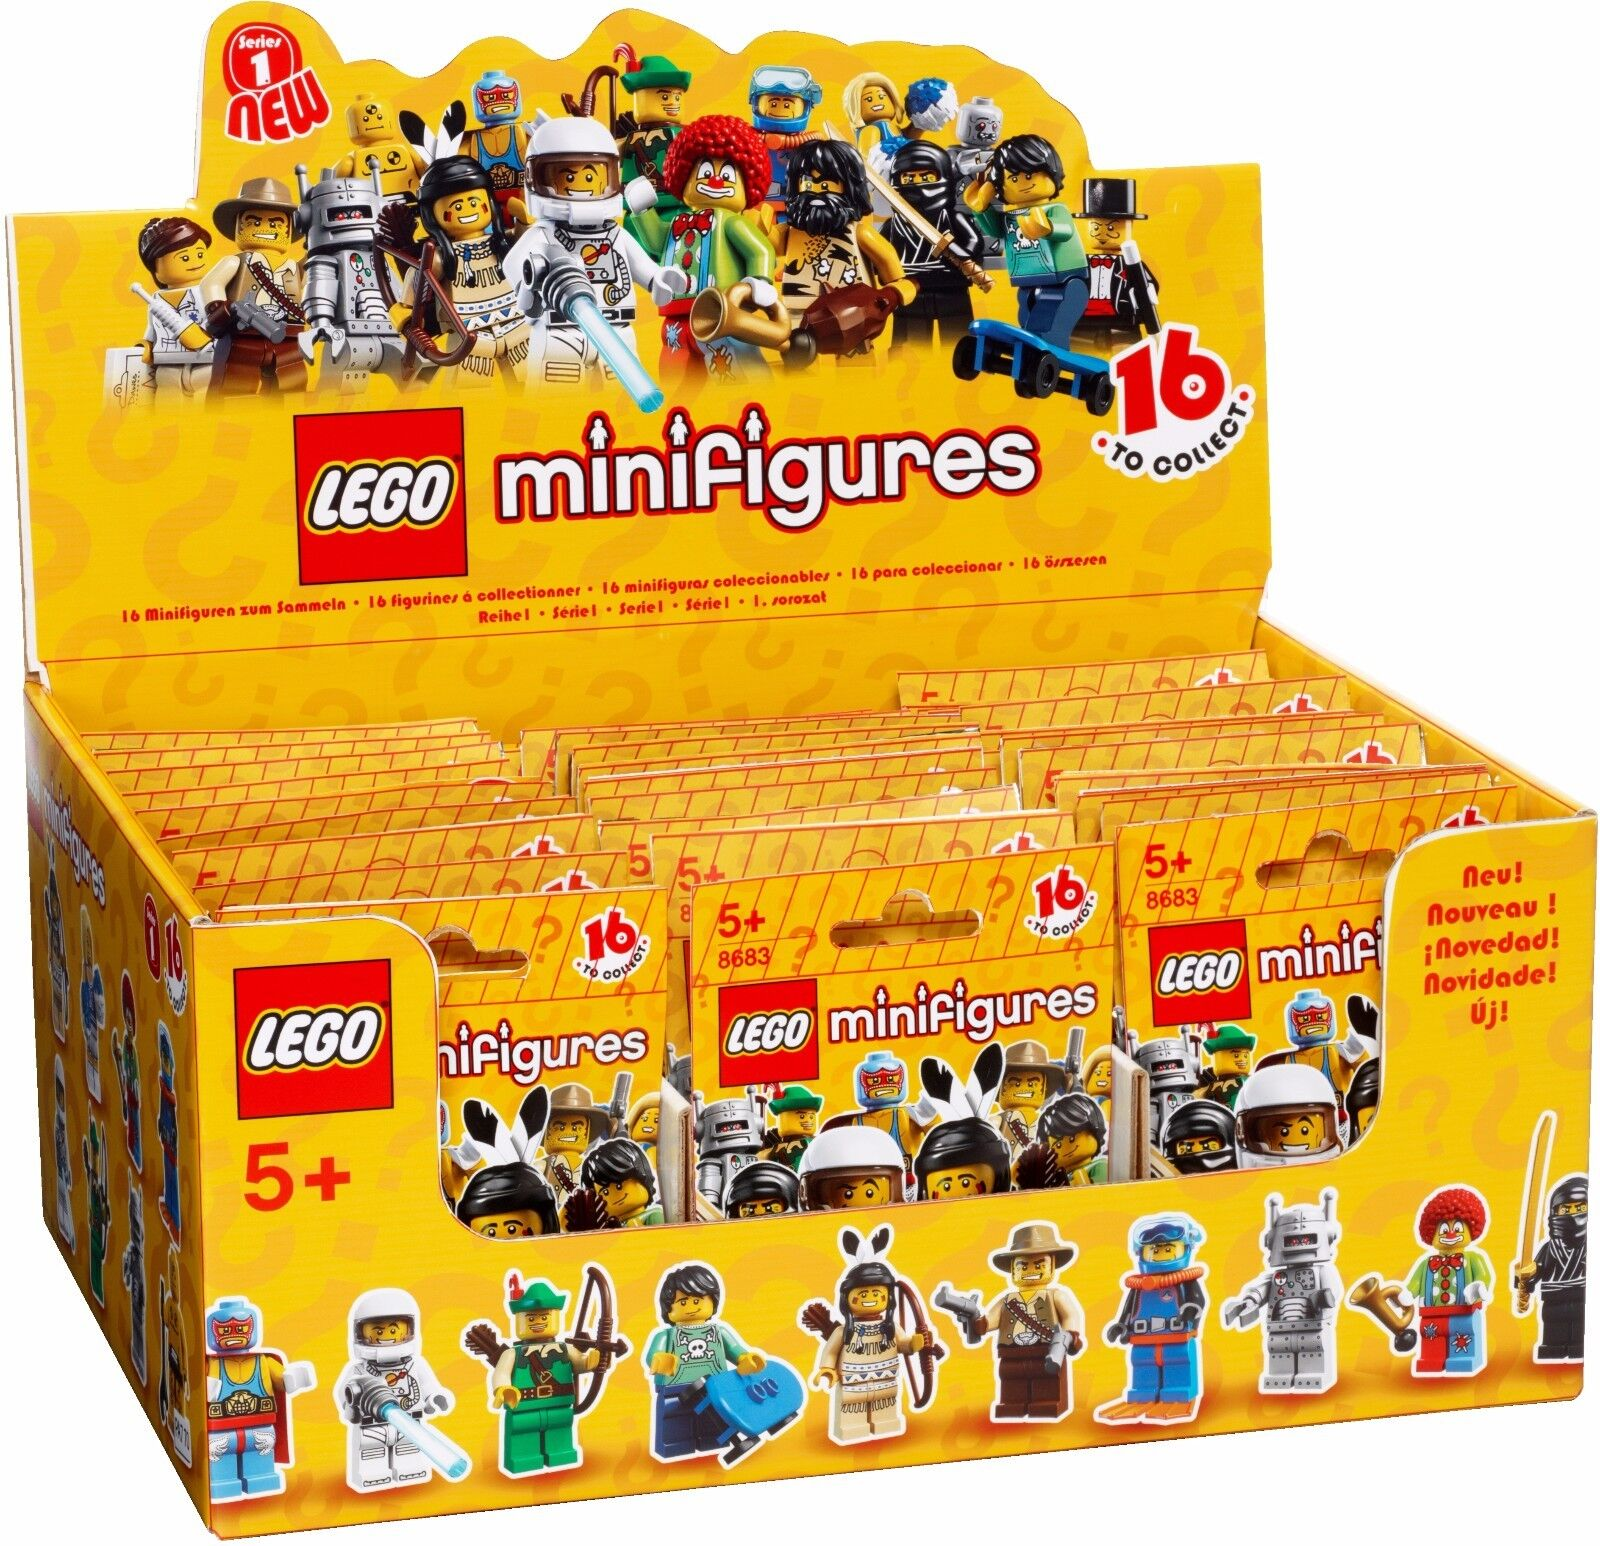 NEW FACTORY SEALED LEGO 8683 Box Case of 60 MINI FIGURINES SÉRIE 1